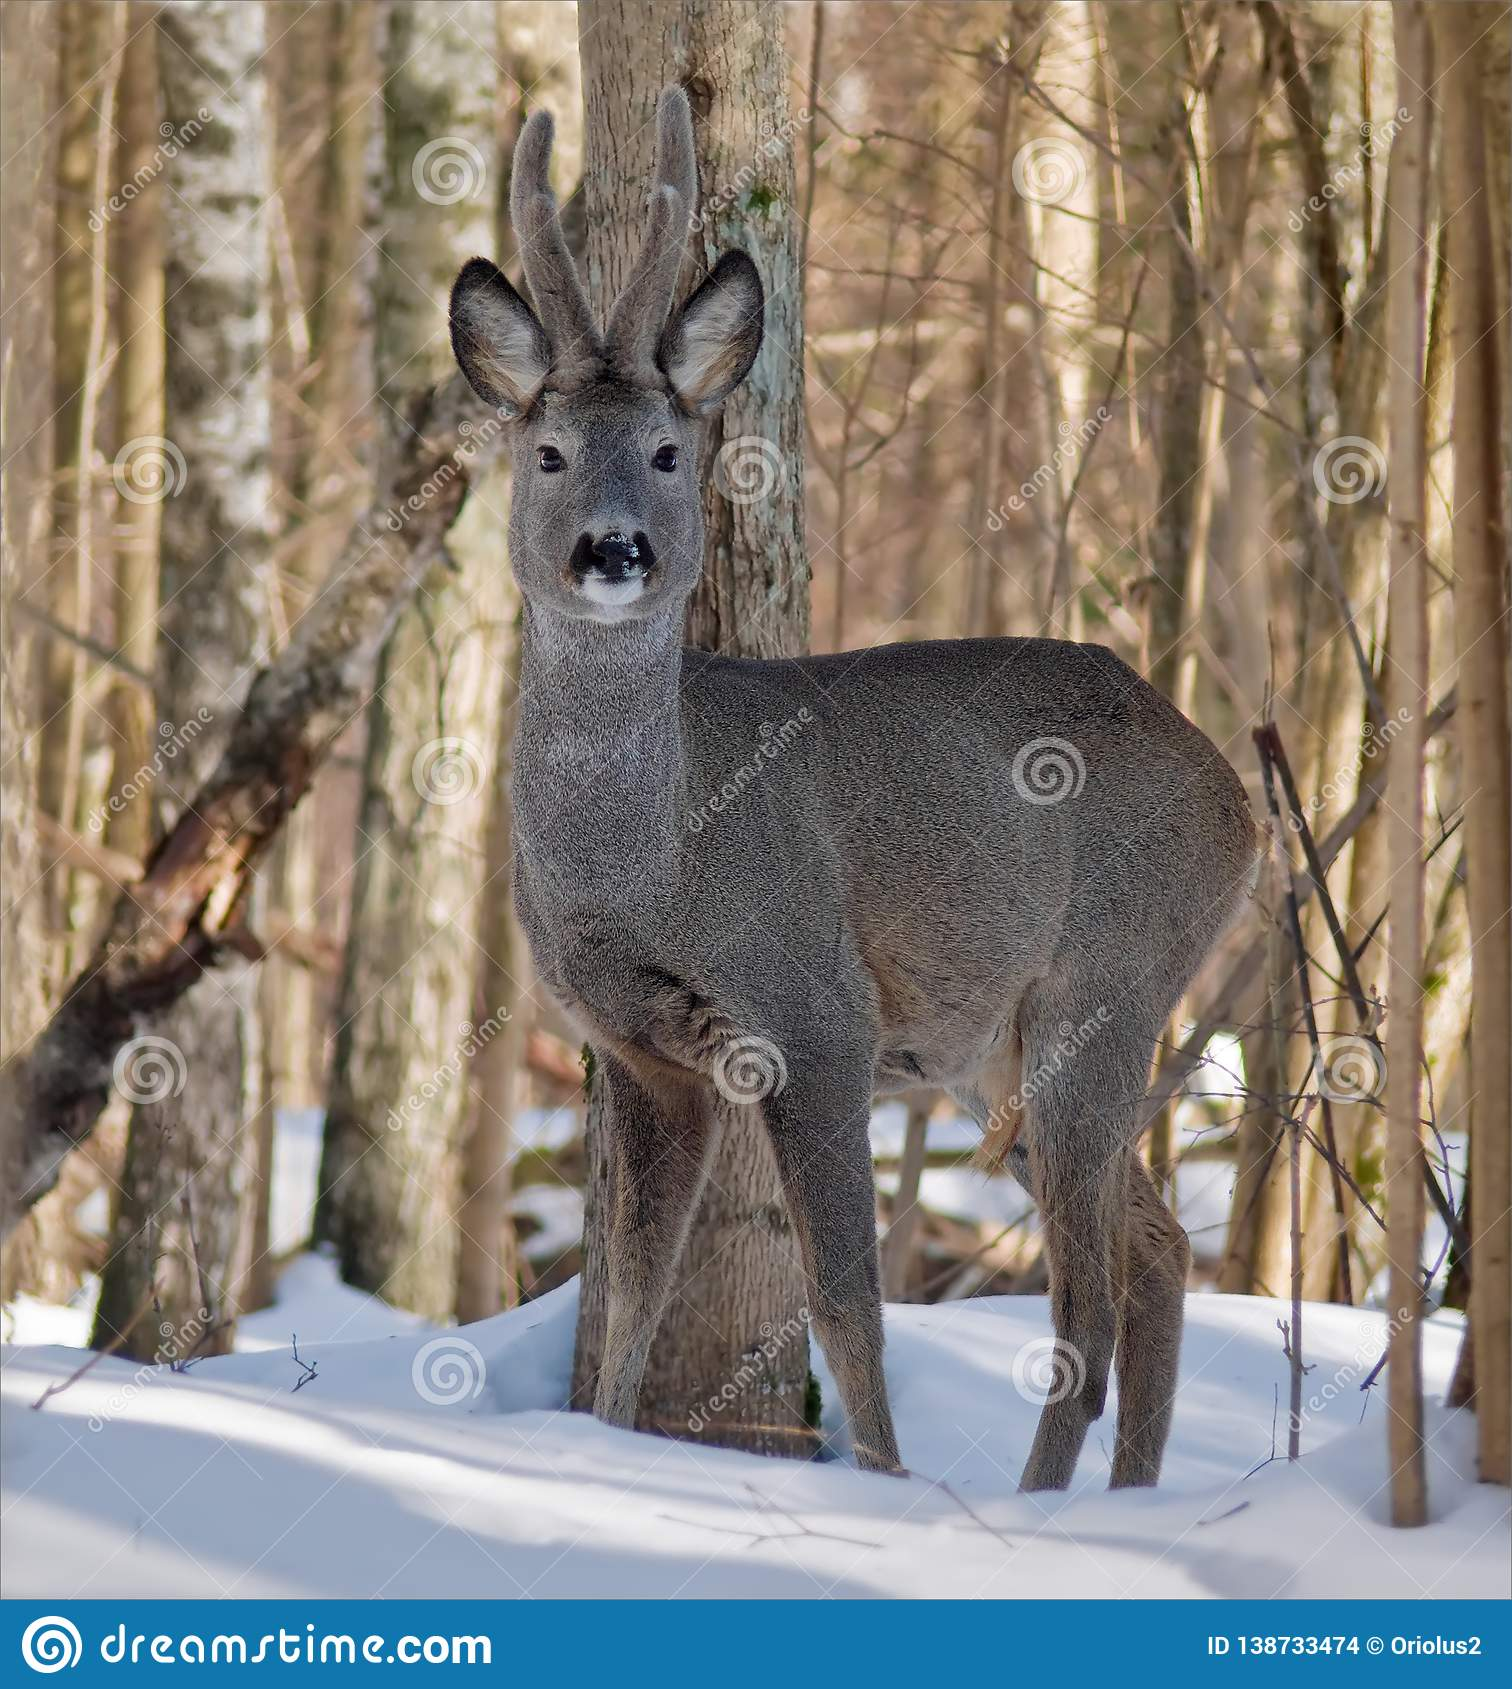 Roe deer male stands between trees in winter forest